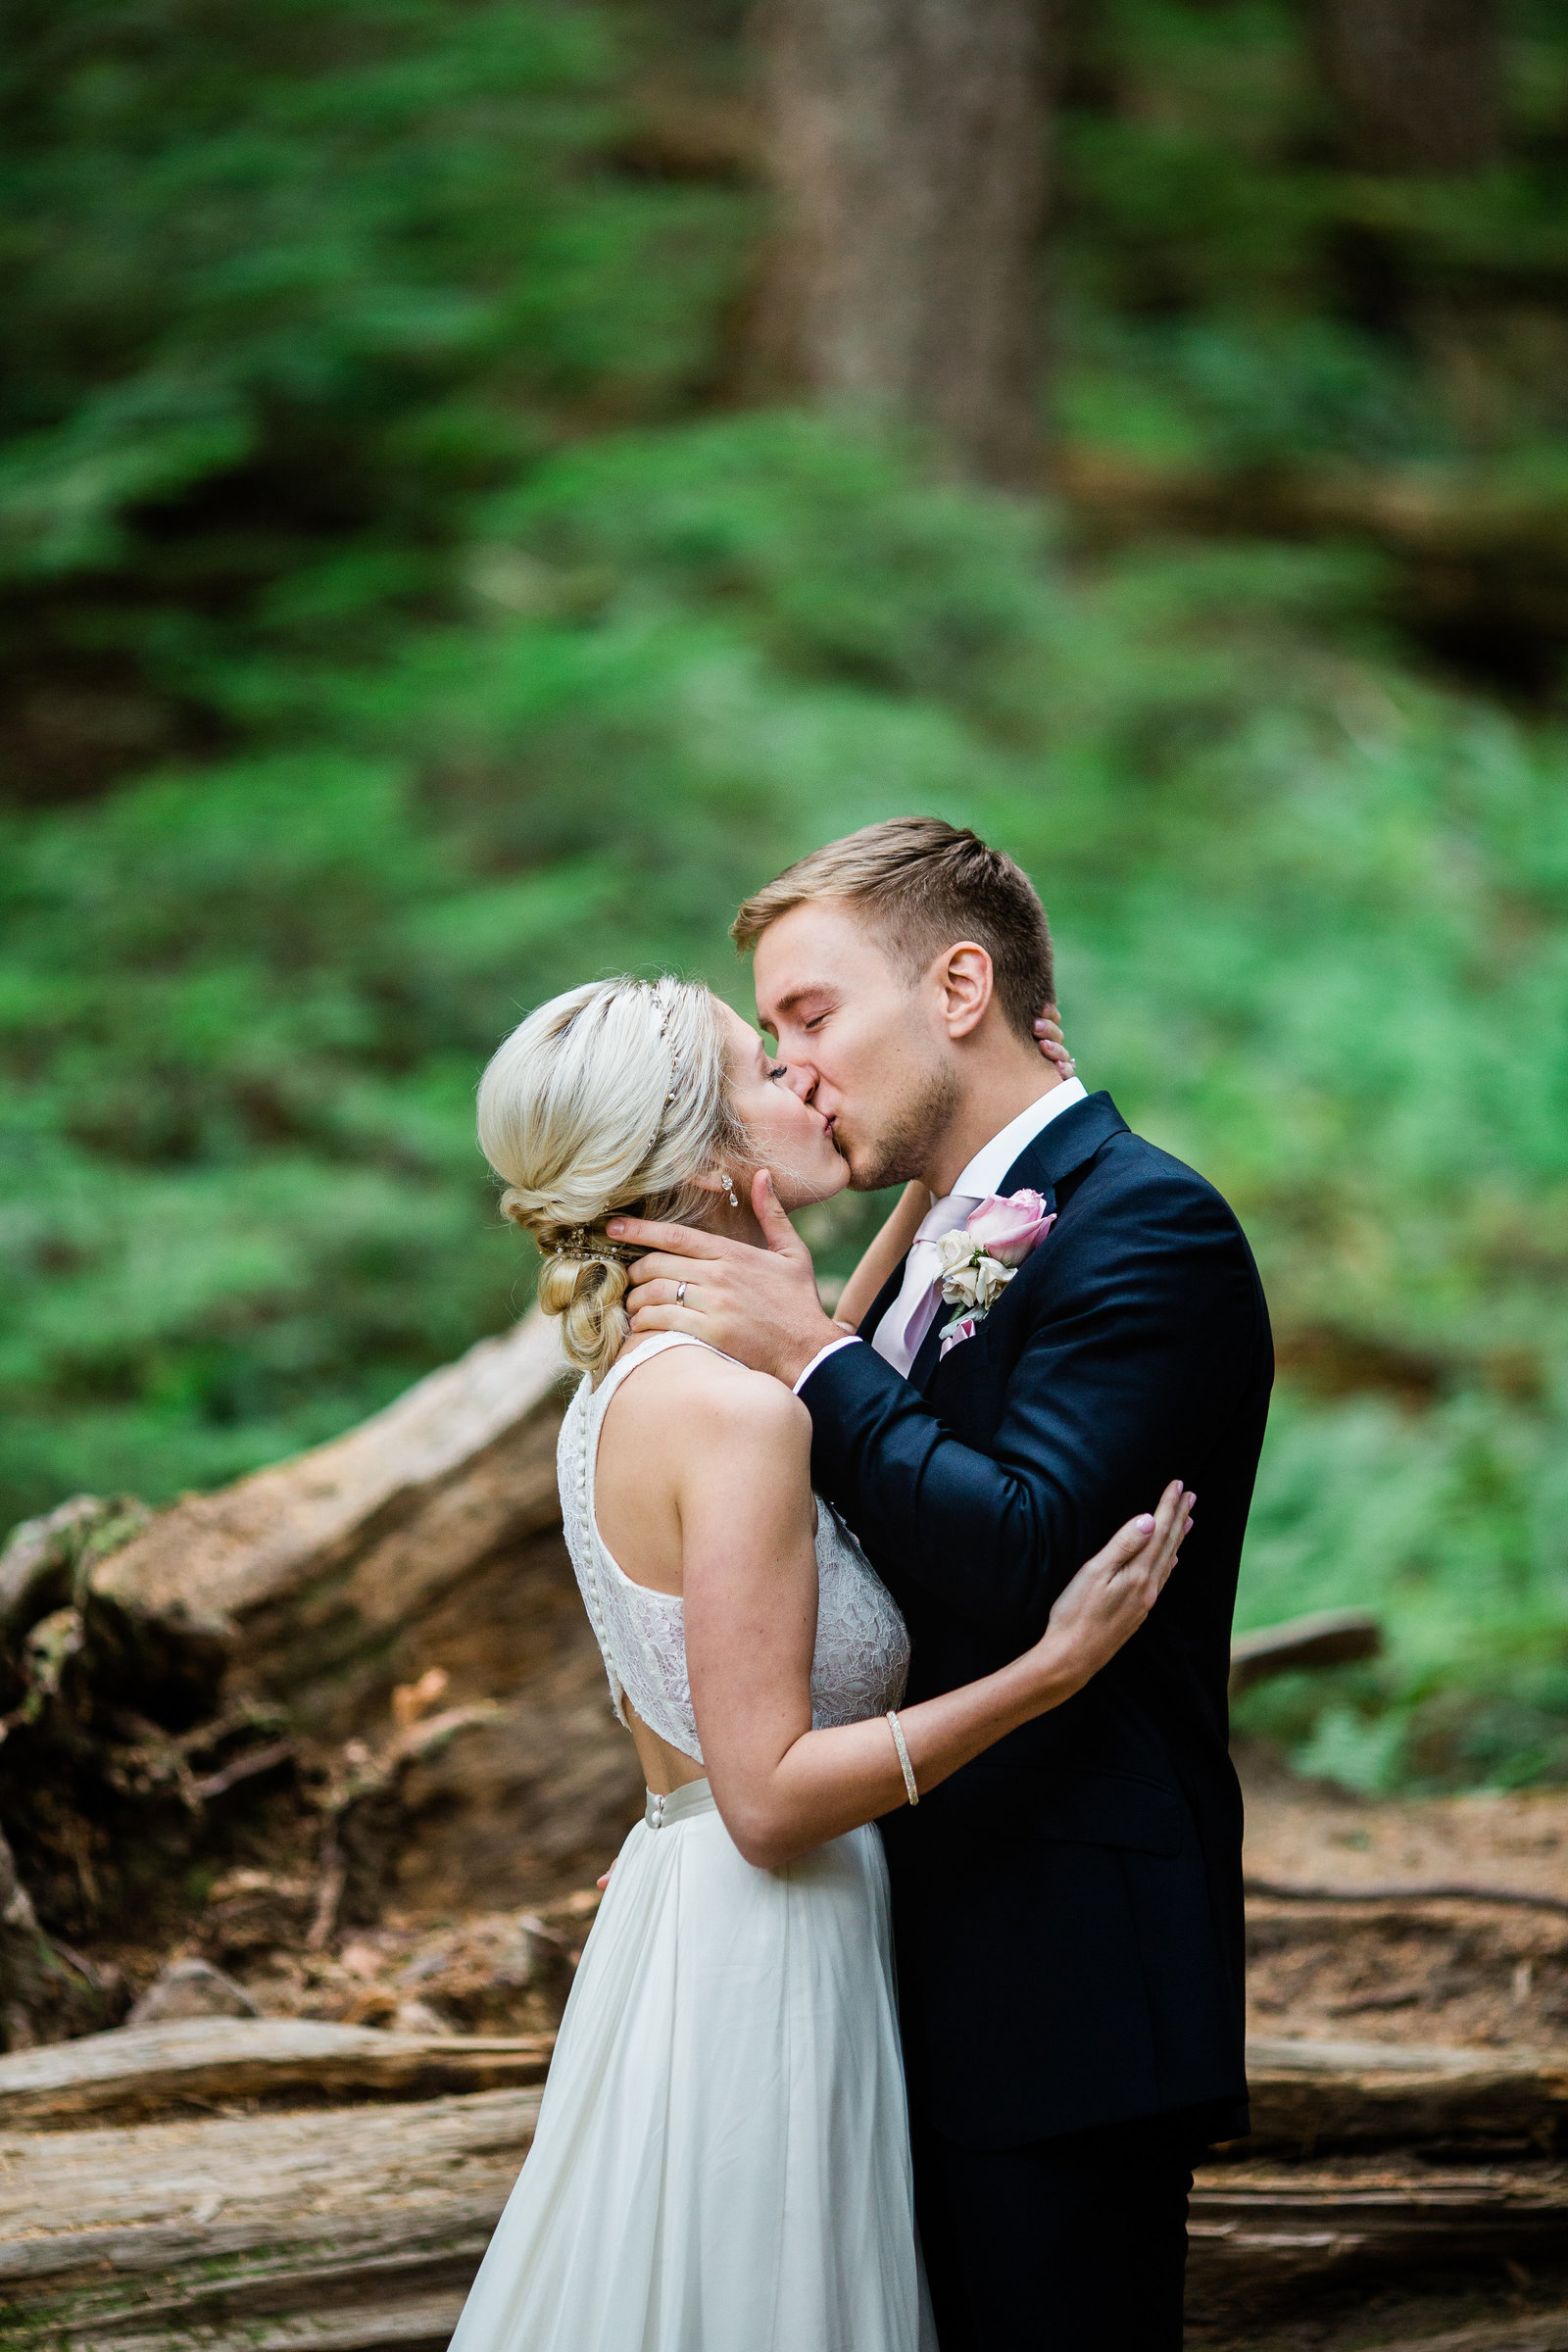 mount-rainier-national-park-elopement-cameron-zegers-photographer-seattle-94